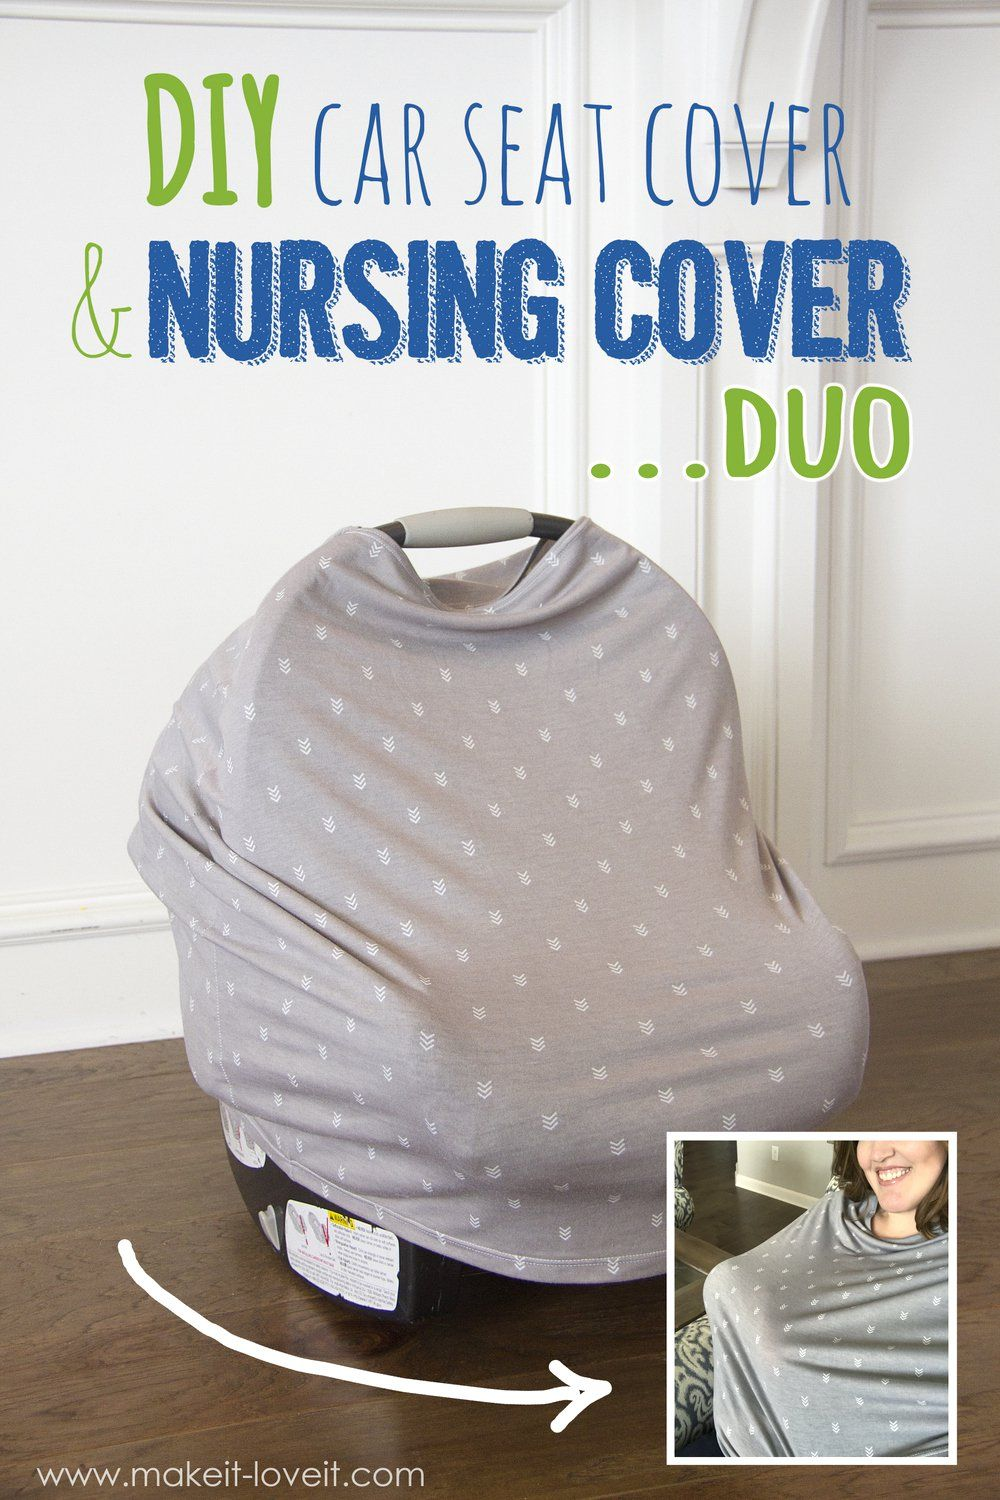 DIY: Stretchy Car Seat Cover and Nursing Cover DUO   Pinterest